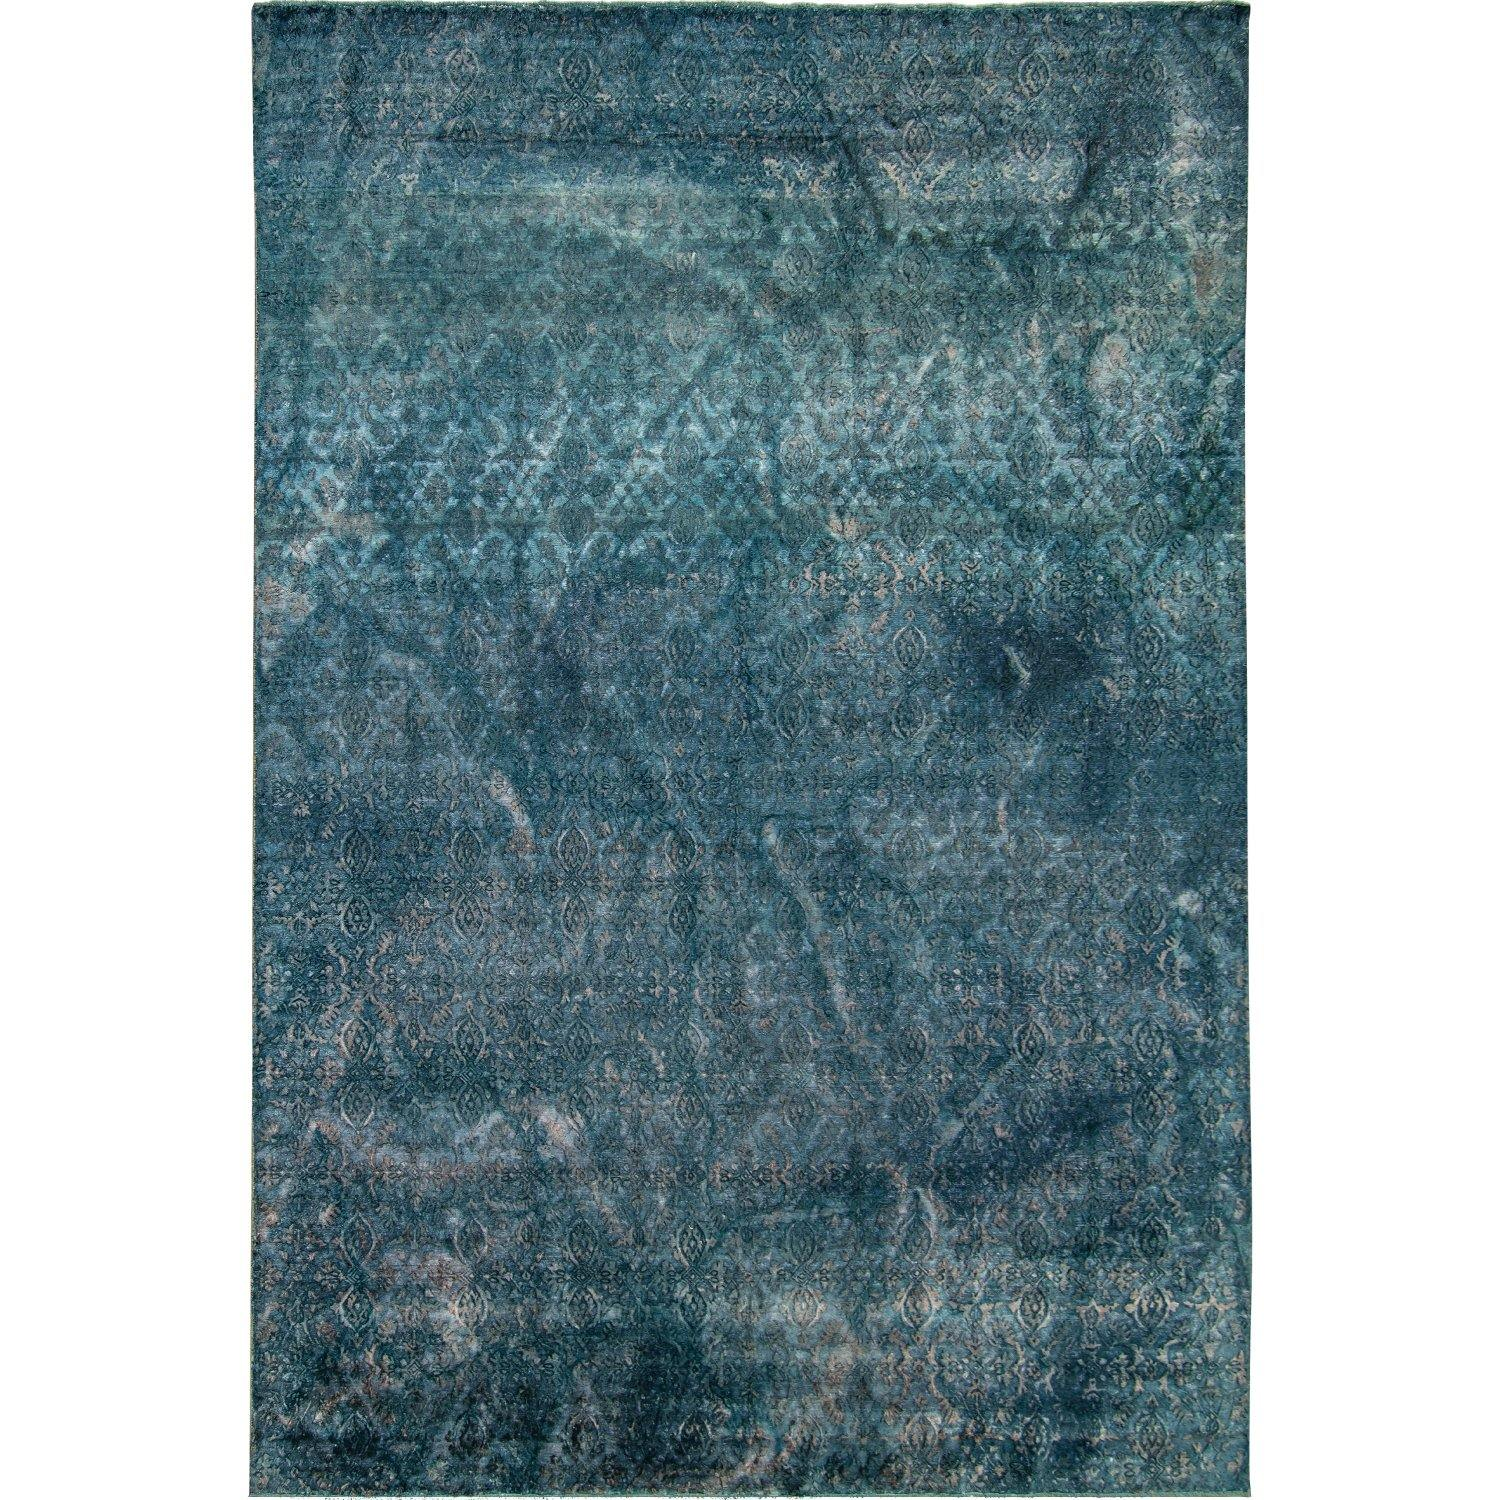 Fine Contemporary Hand-knotted NZ Wool & Bamboo Silk Rug 303cm x 431cm Persian-Rug | House-of-Haghi | NewMarket | Auckland | NZ | Handmade Persian Rugs | Hand Knotted Persian Rugs